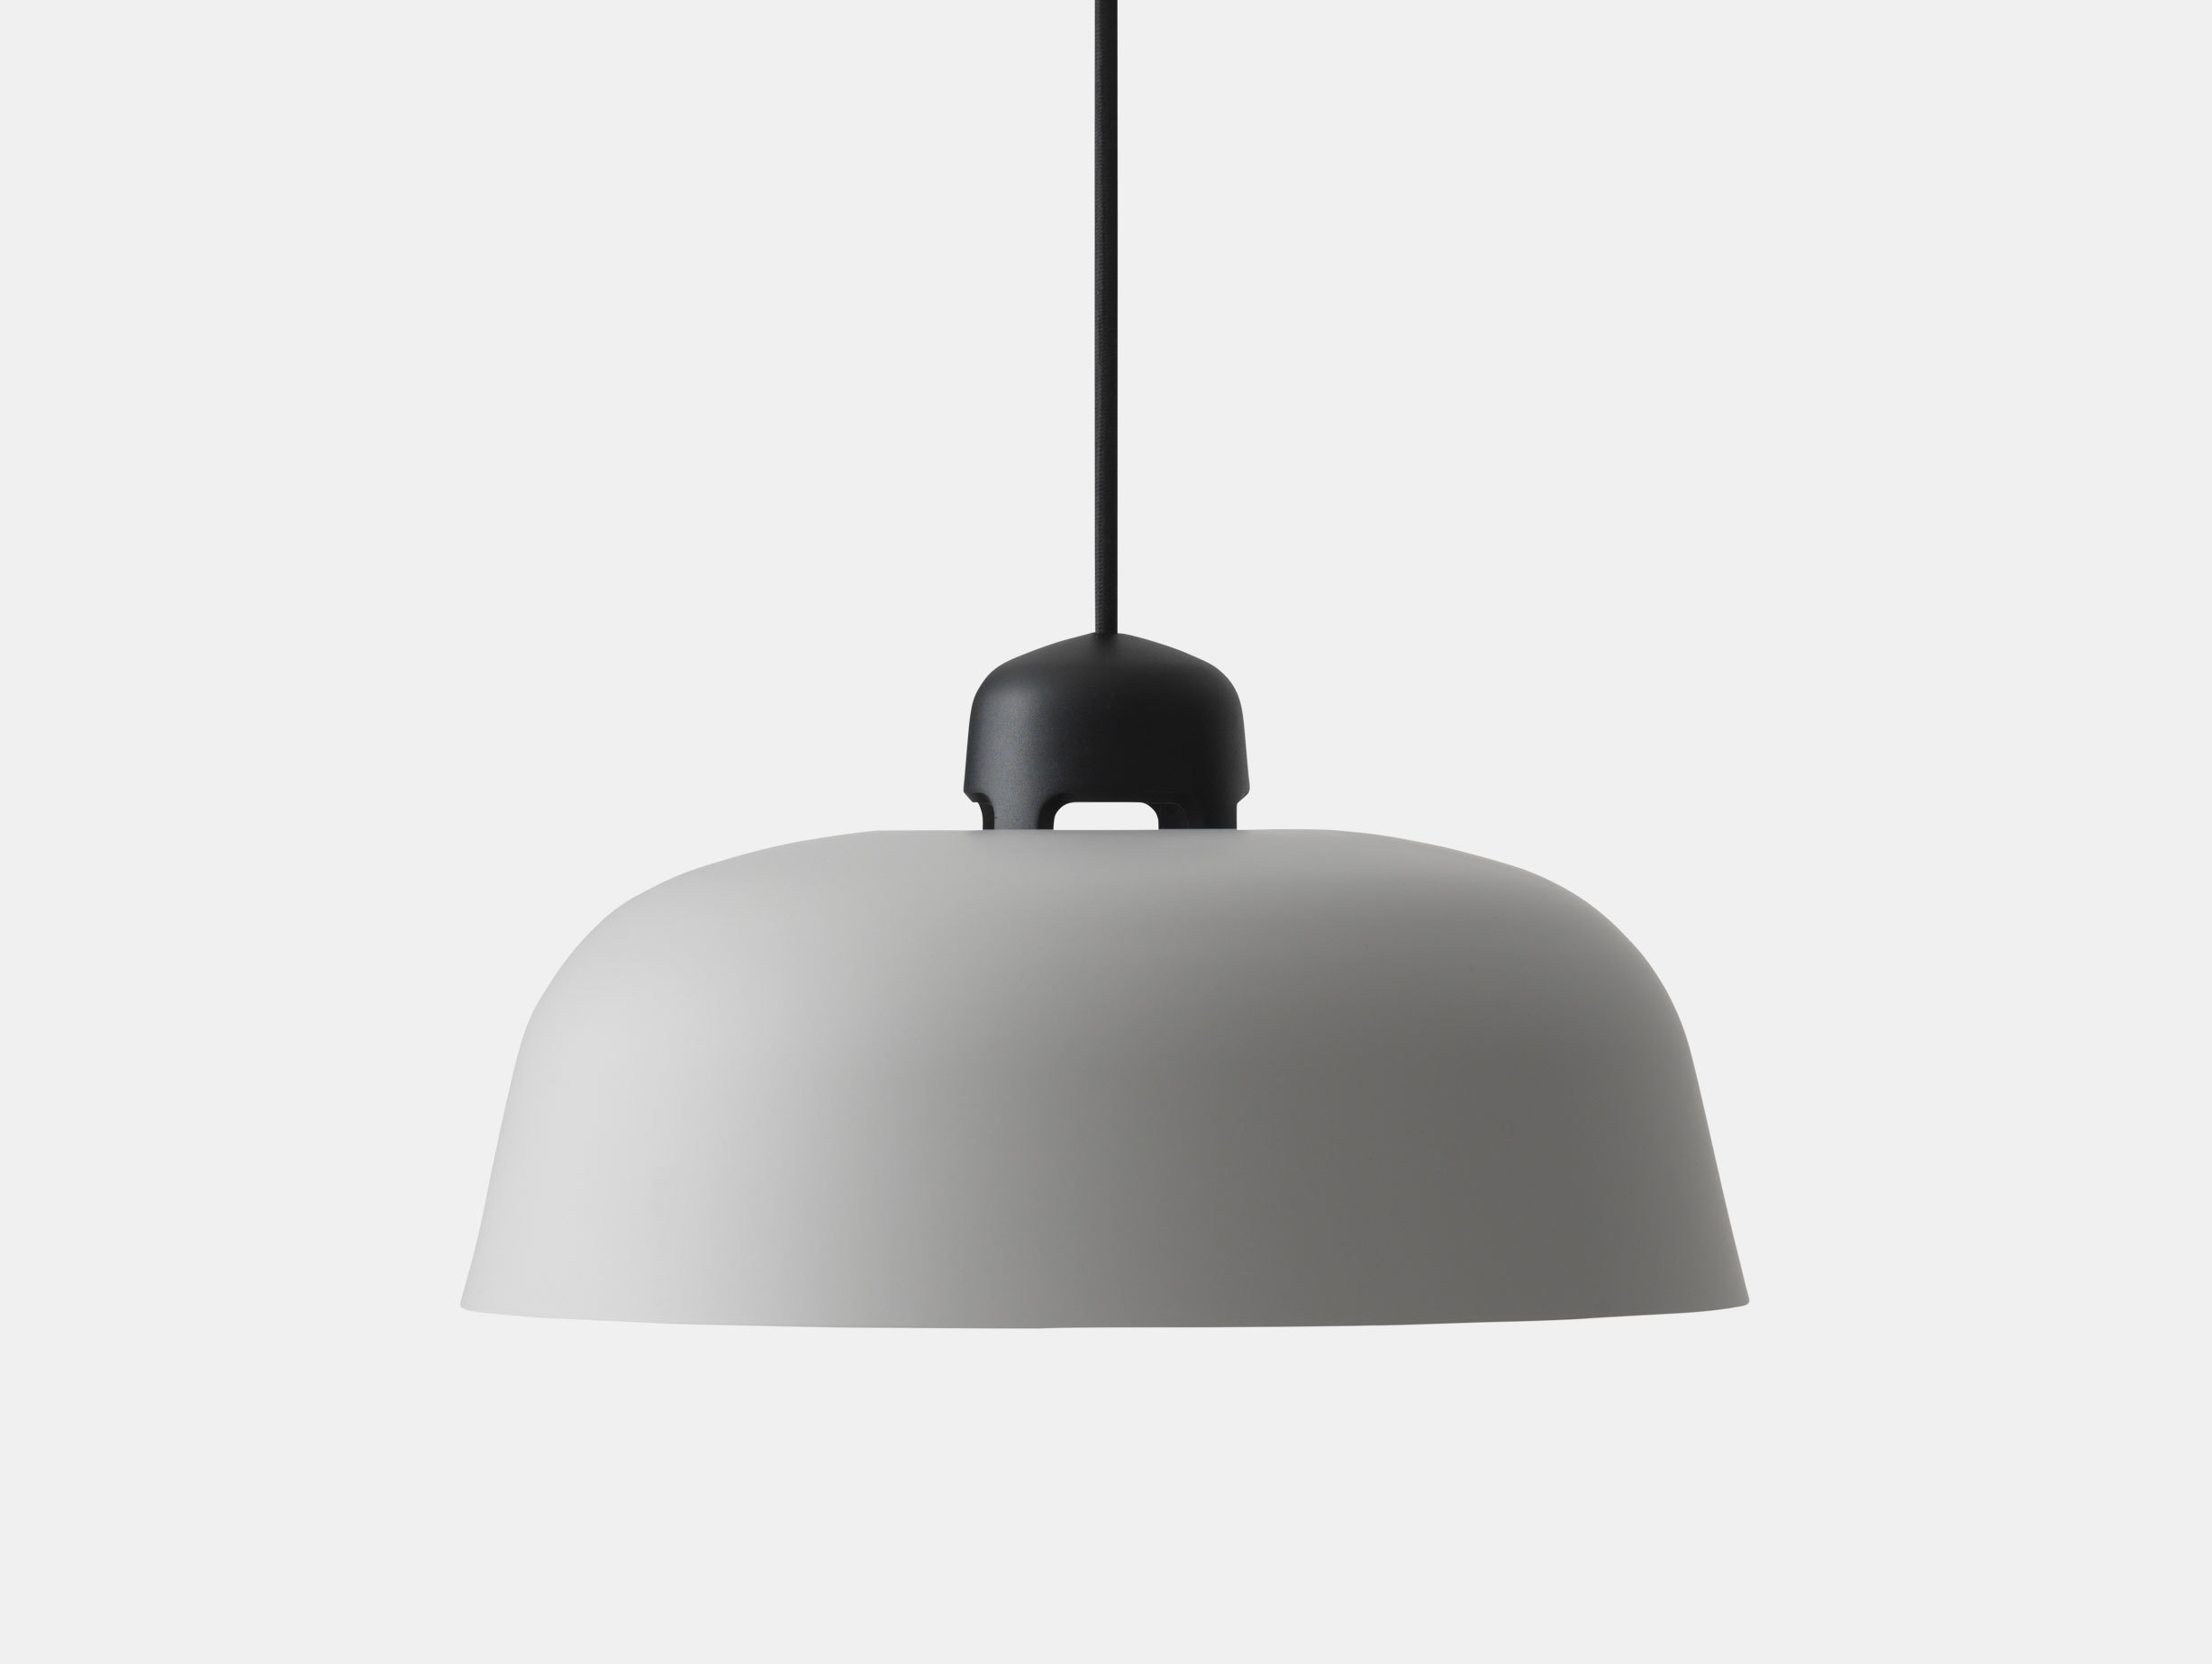 Wastberg W162 Dalston Pendant Light Black Grey Sam Hecht Kim Colin